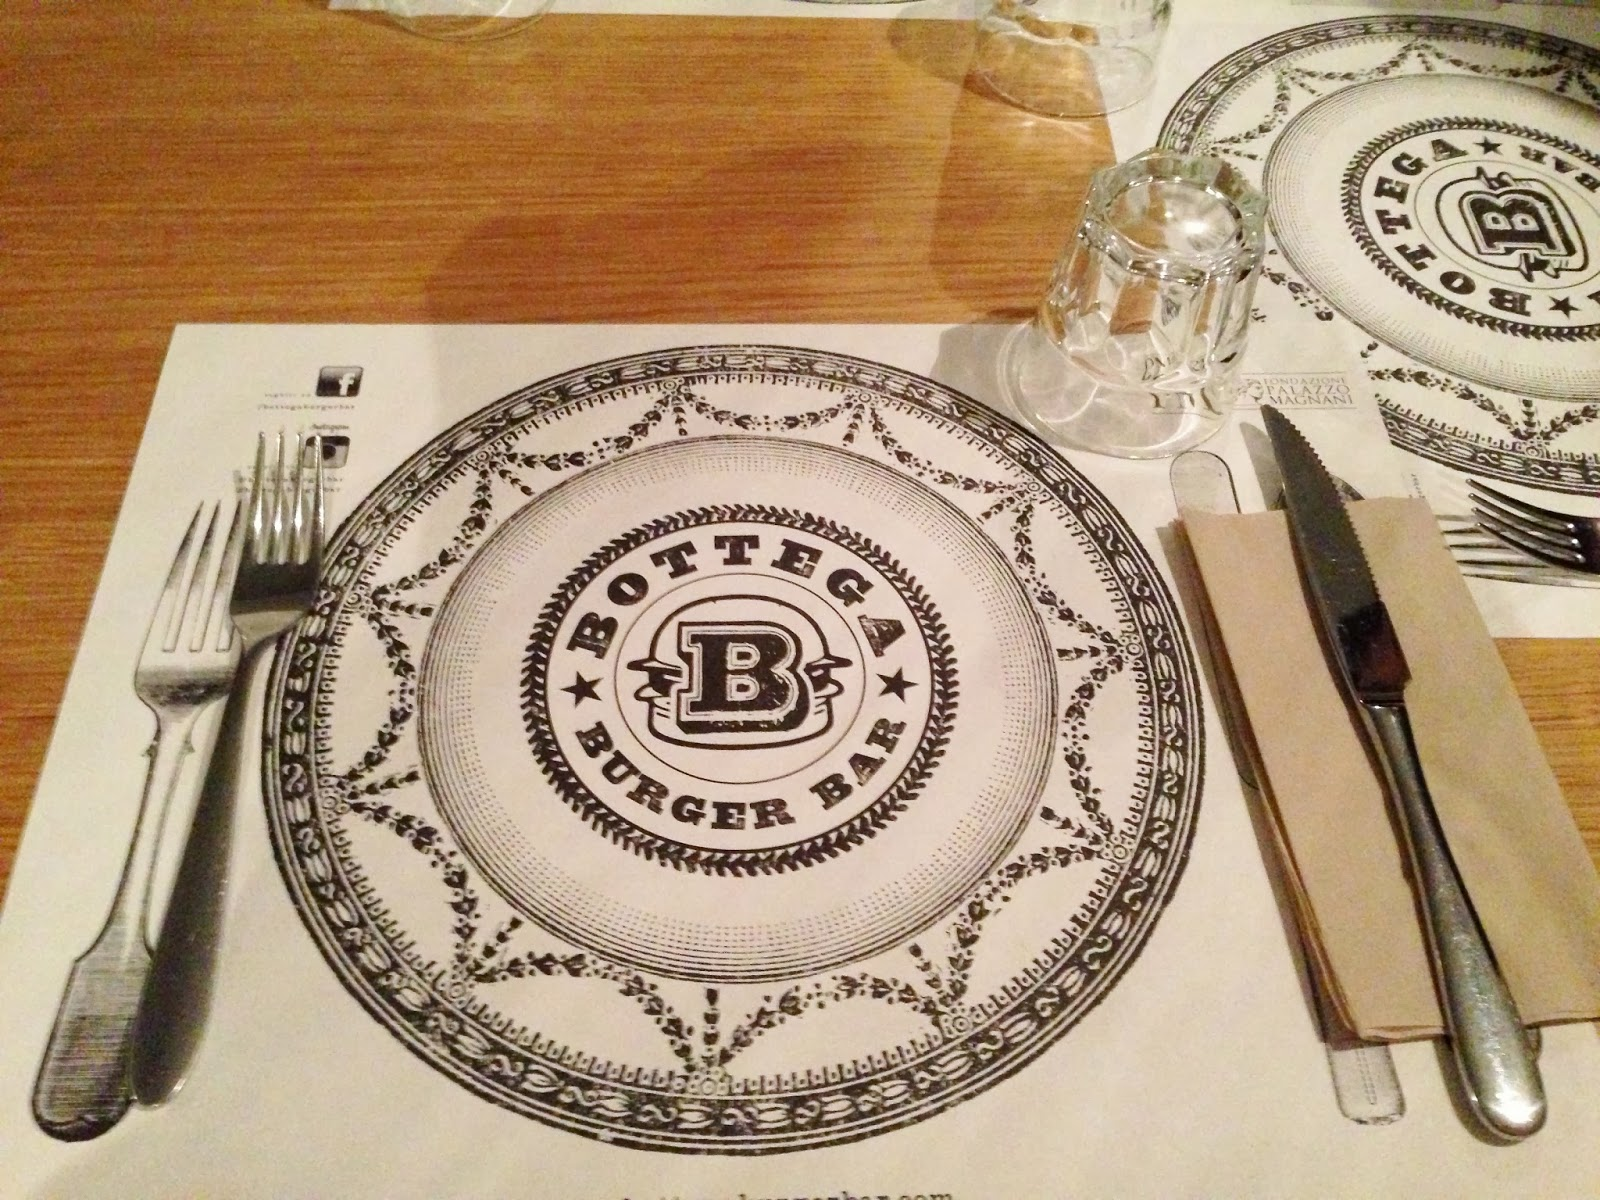 bottega burger bar, reggio emilia